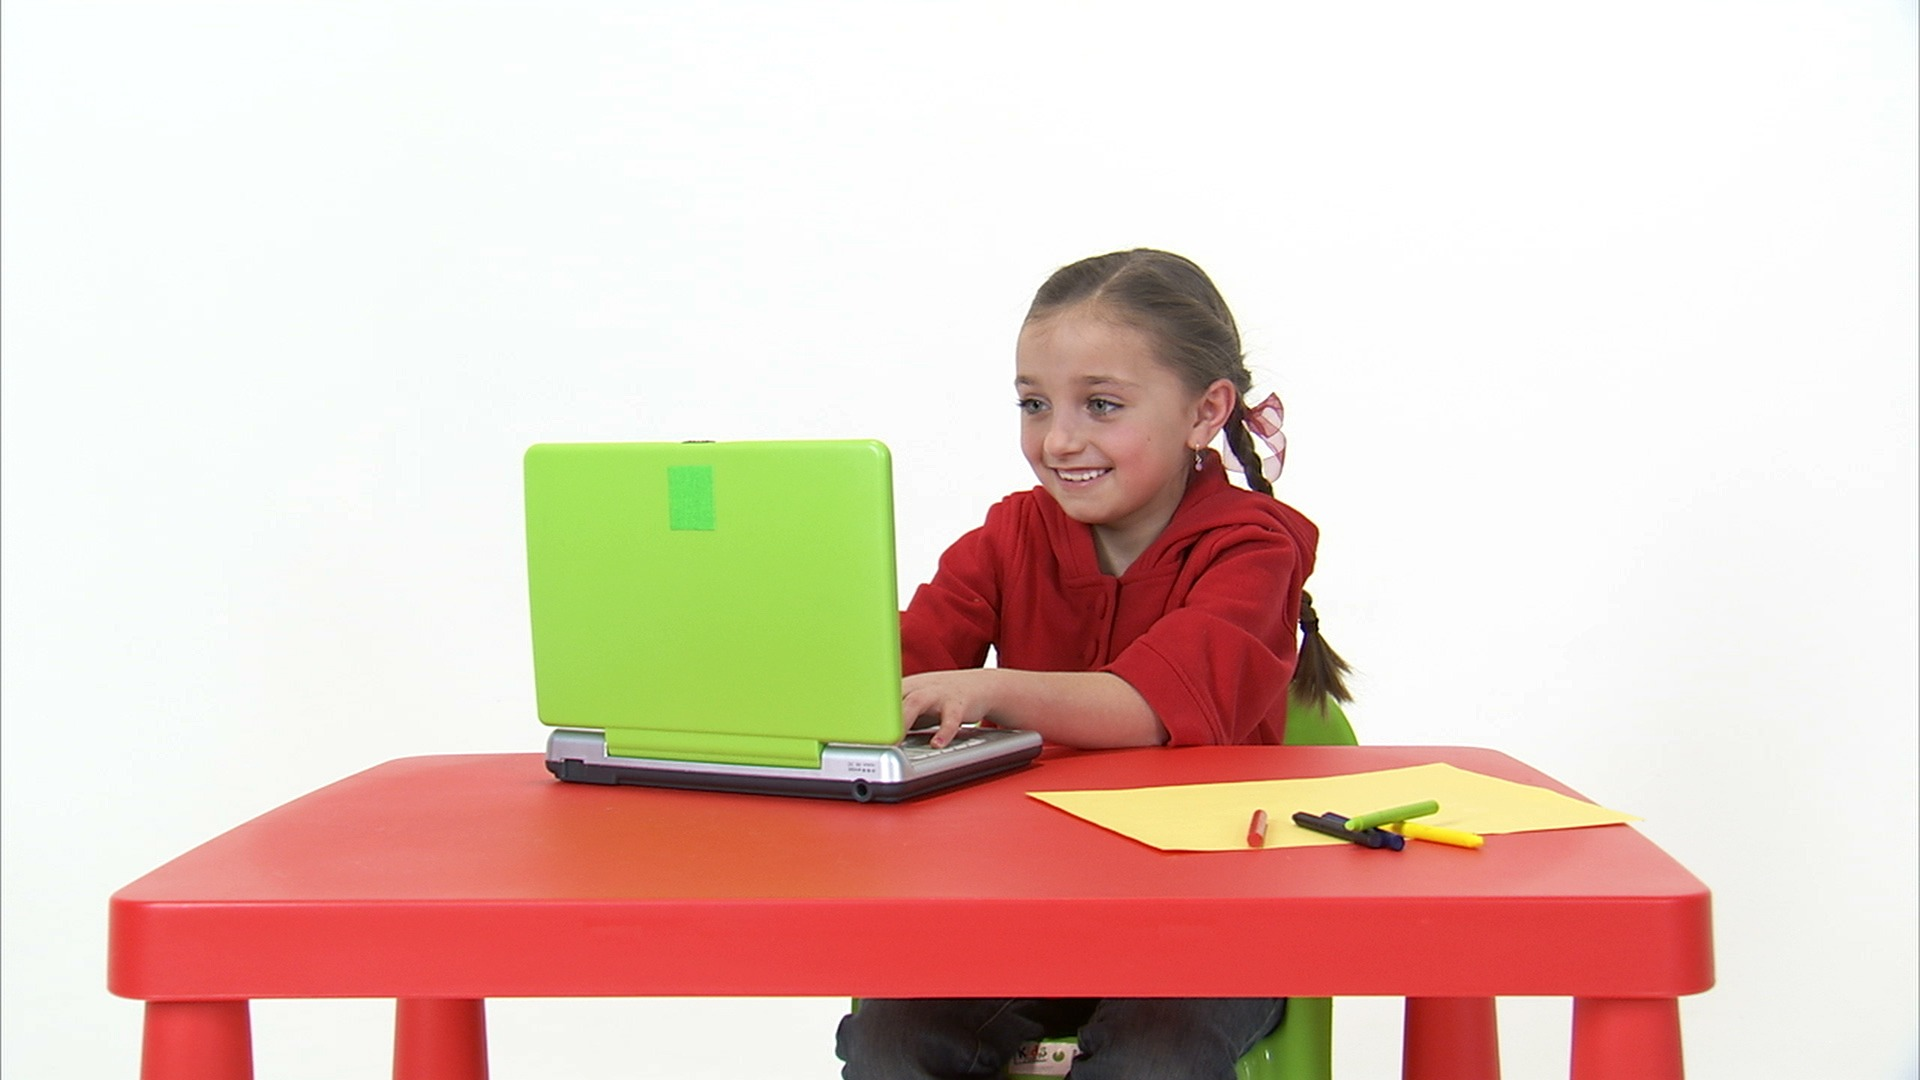 Online safety for children and young people